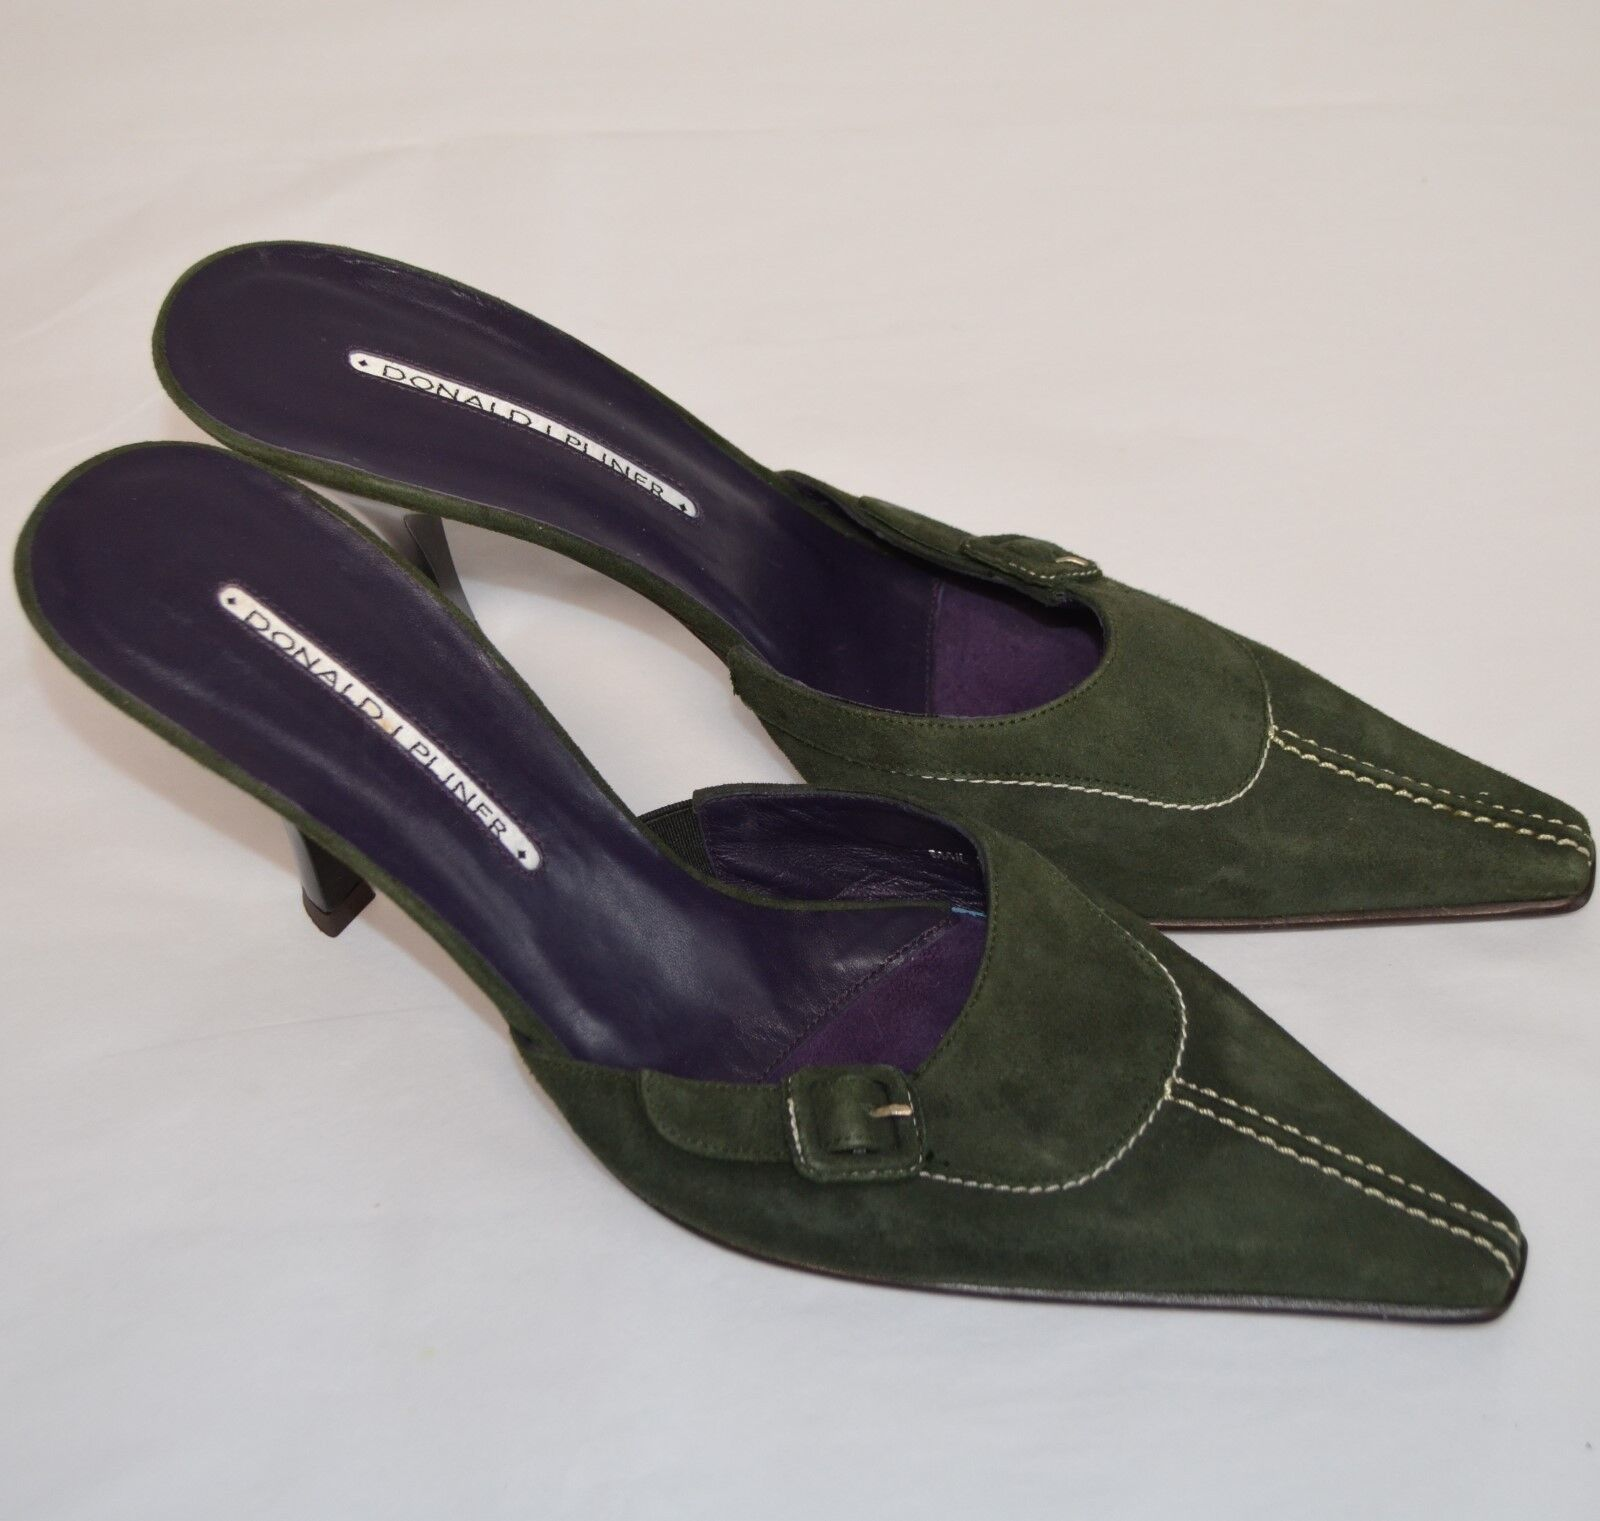 Donald Pliner Mail High Heels Slides Mule WM 10 N Green Suede Schuhes Pumps Buckle